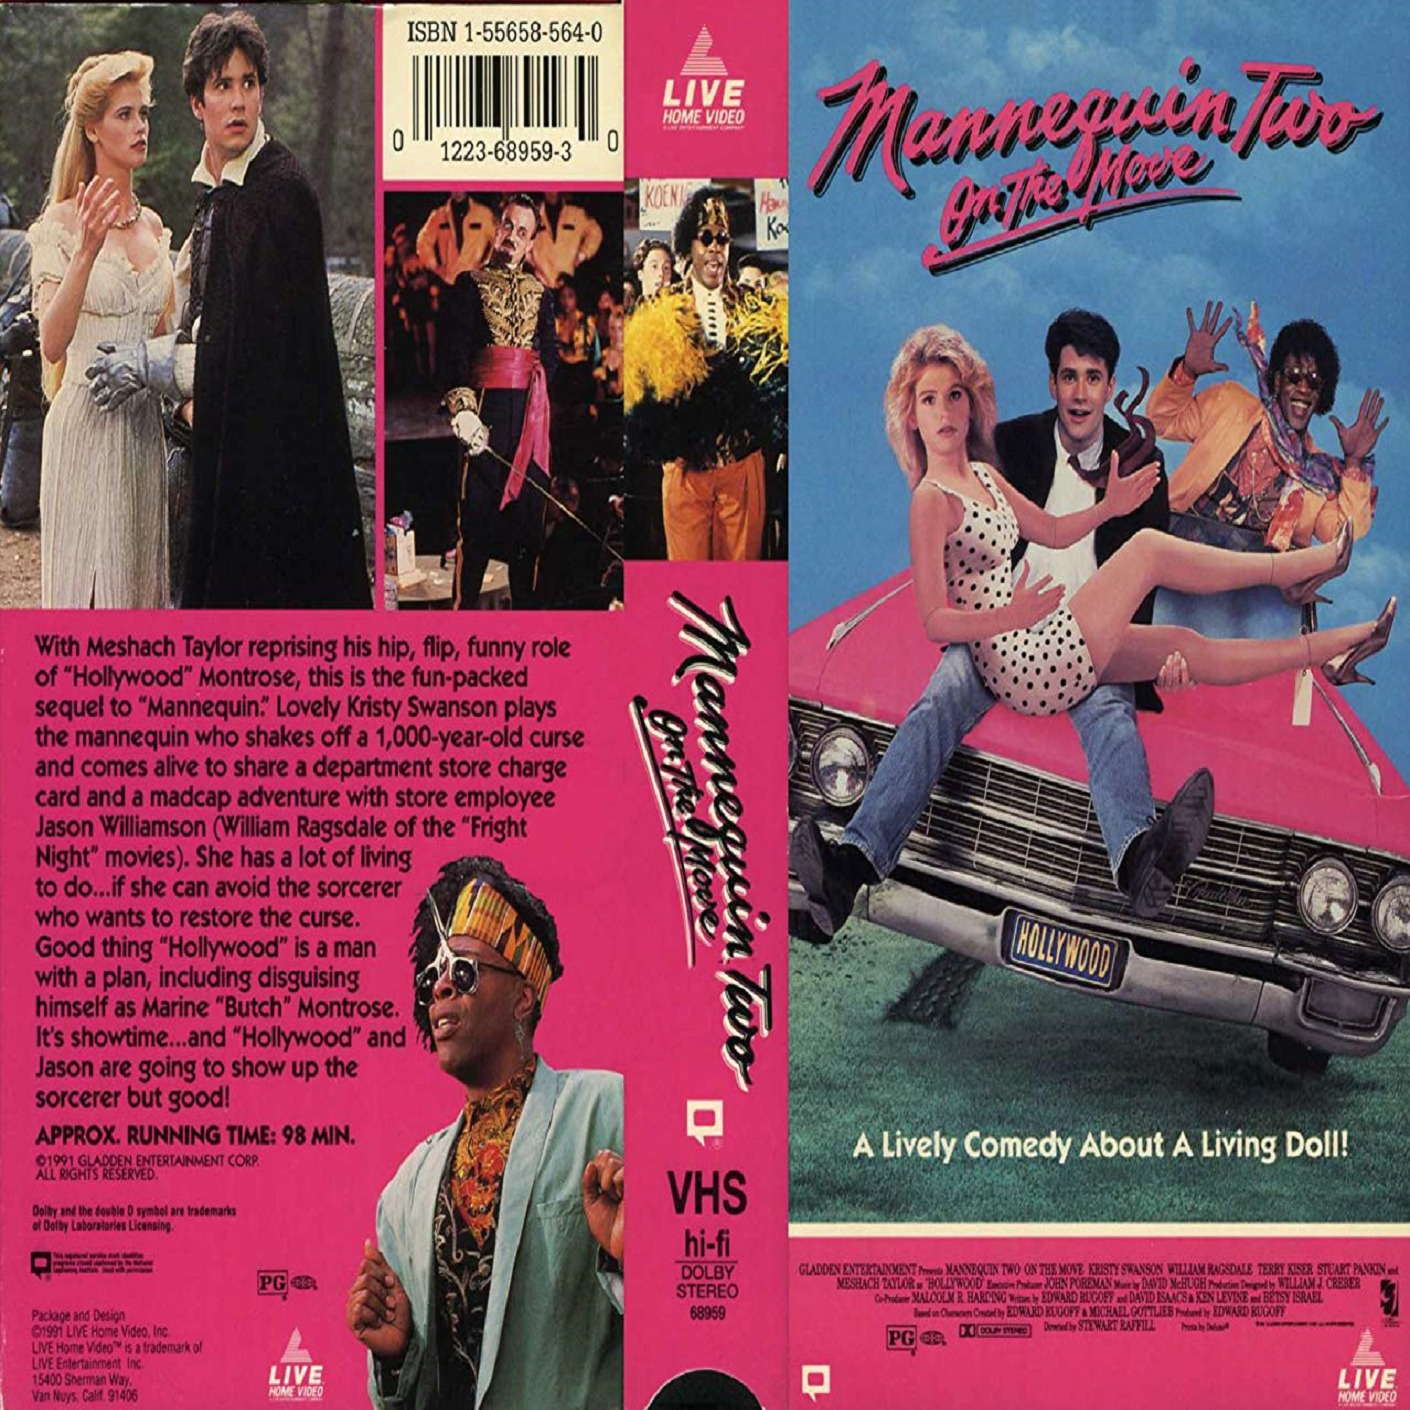 GVN Presents: They Called This a Movie - Mannequin: On the Move